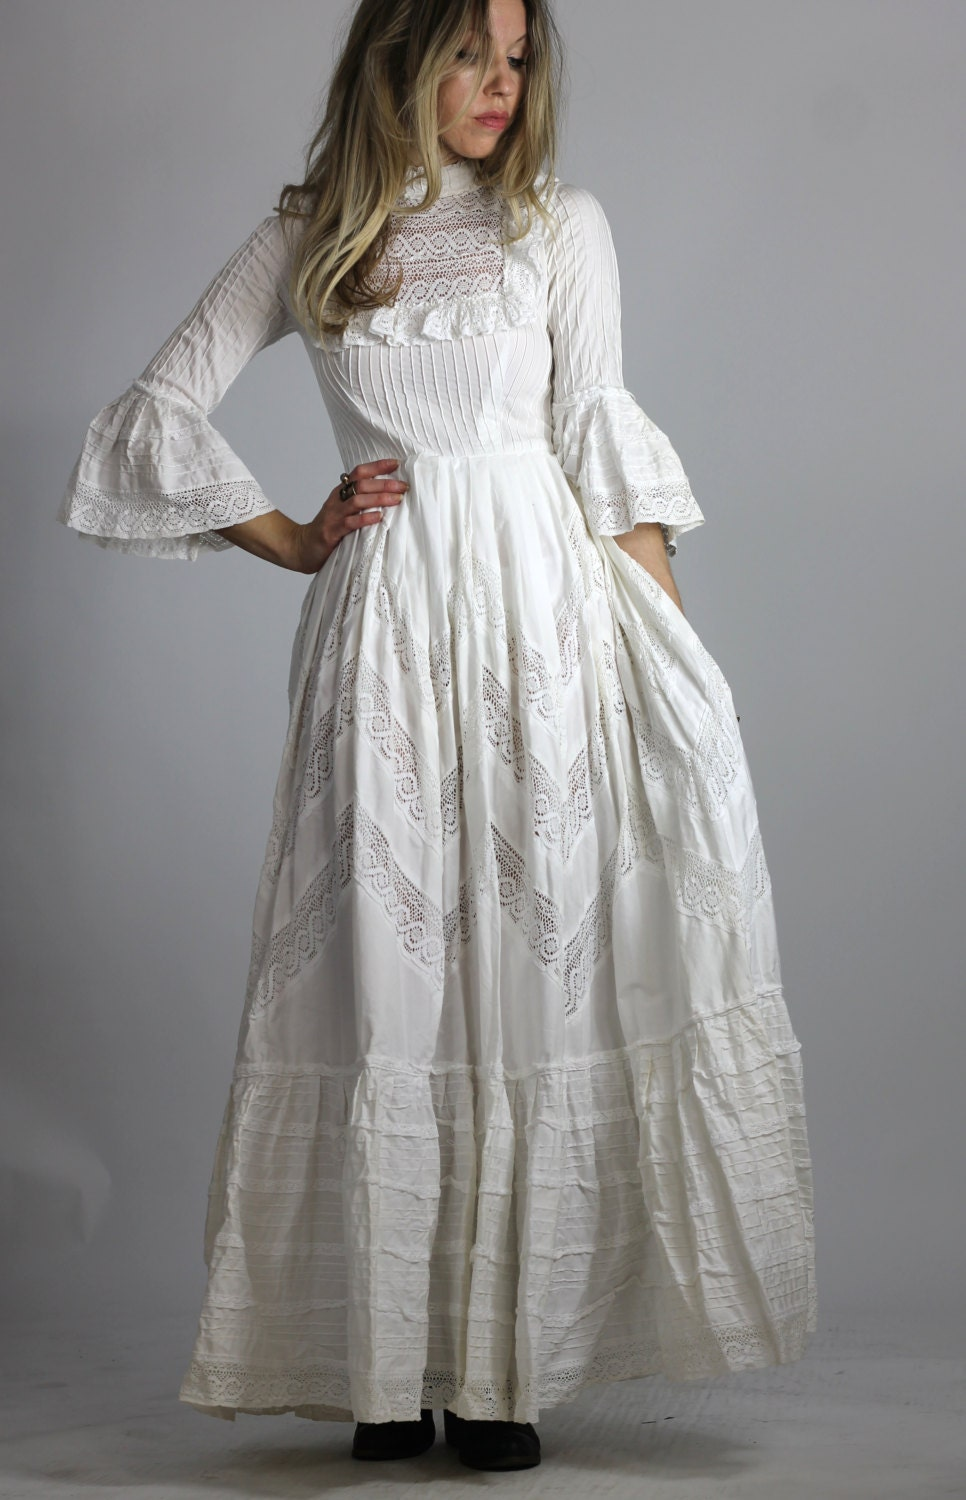 Vintage Mexican Wedding Dresses For  : Vintage s mexican wedding dress white by autoluxevintage